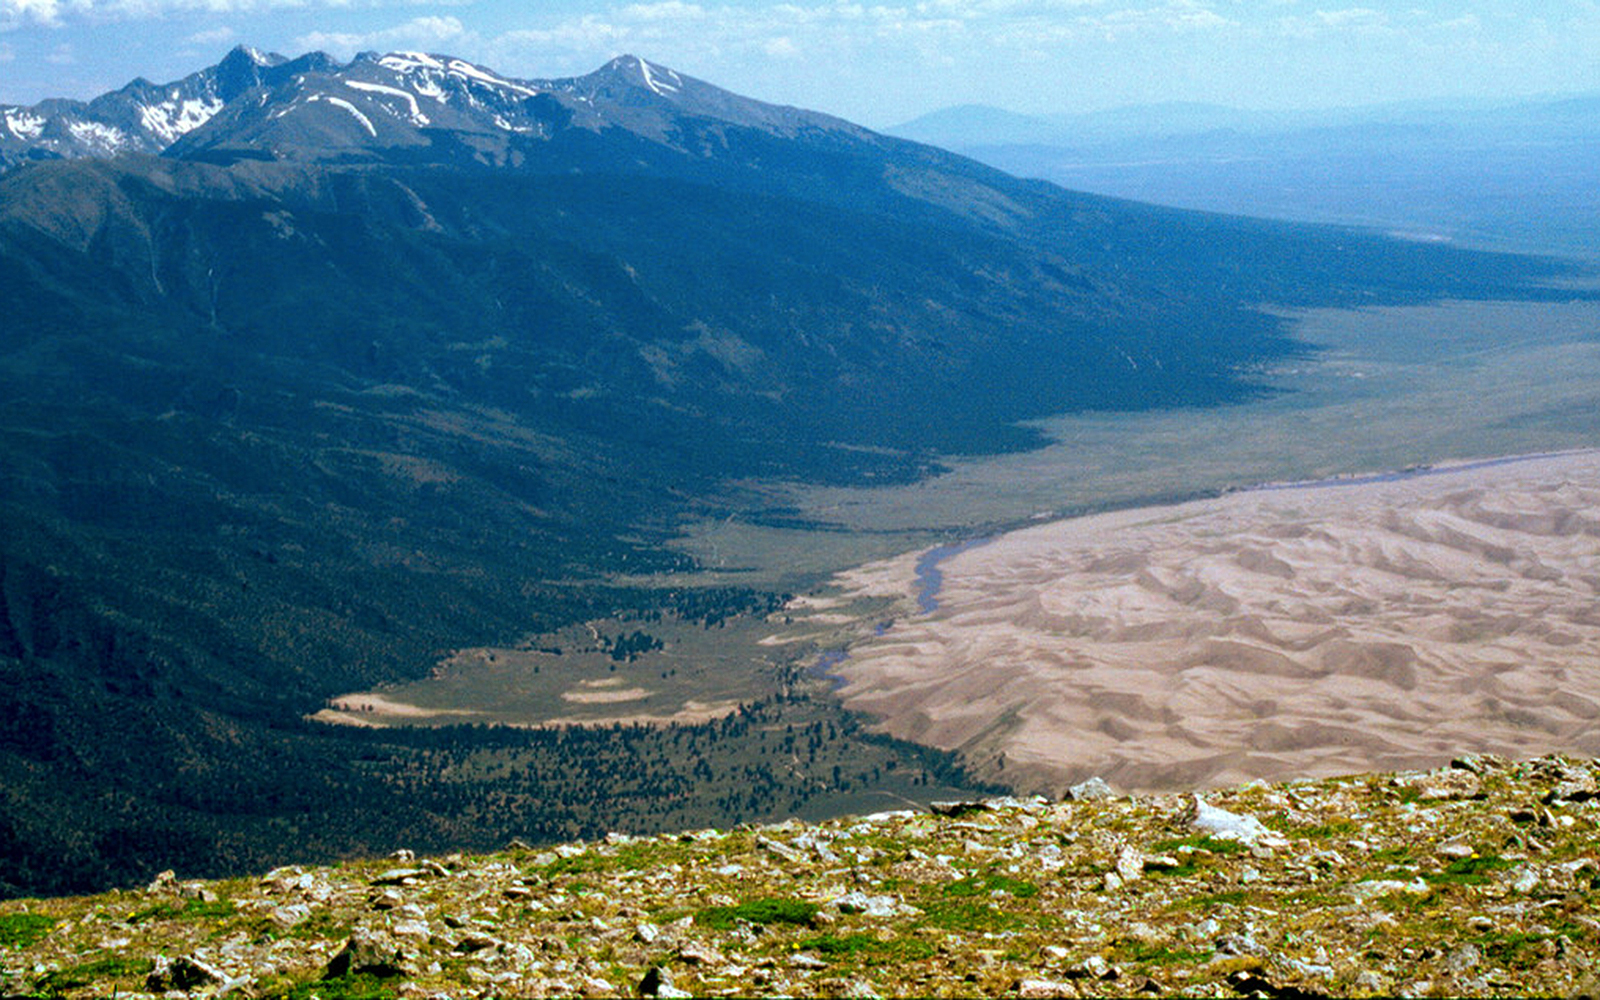 Best U.S. National Park Views: Mount Herard, Great Sand Dunes National Park